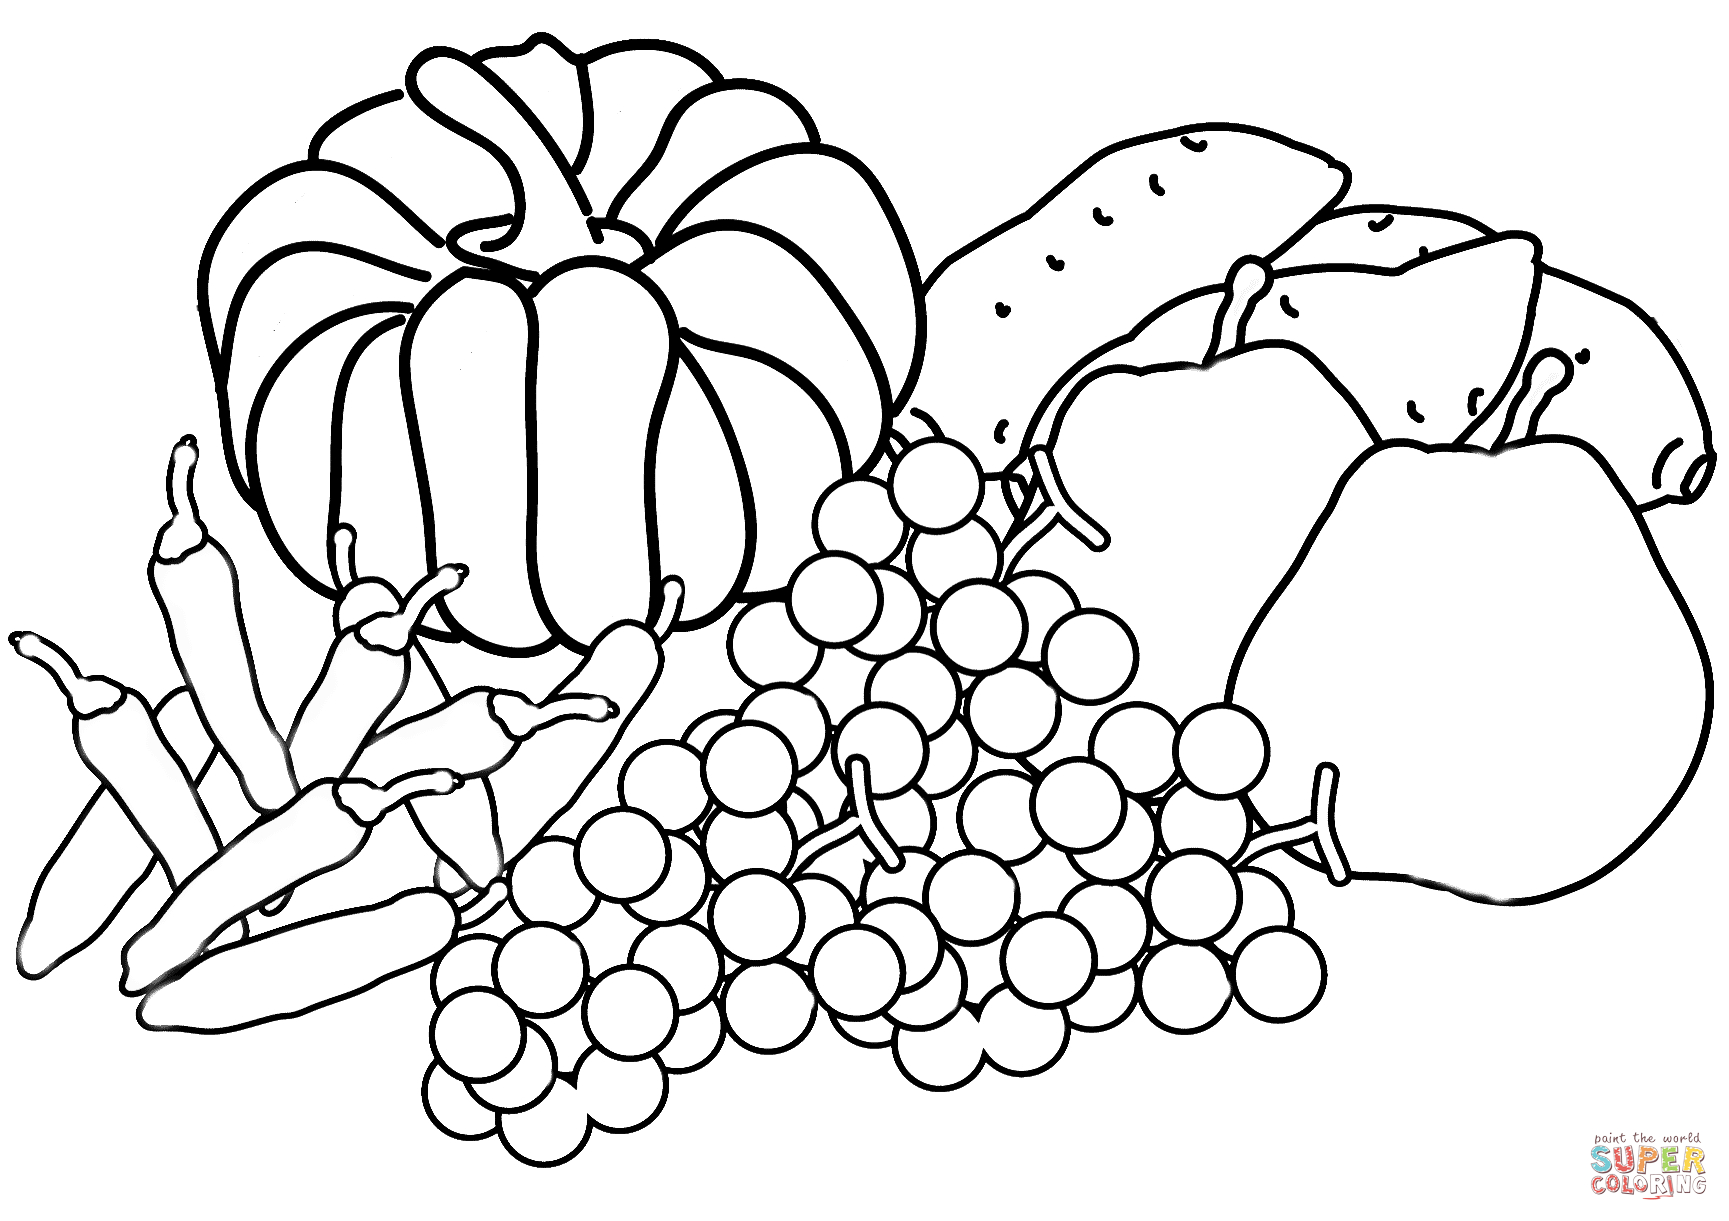 Autumn Harvest Coloring Page | Free Printable Coloring Pages - Free Printable Fall Harvest Coloring Pages